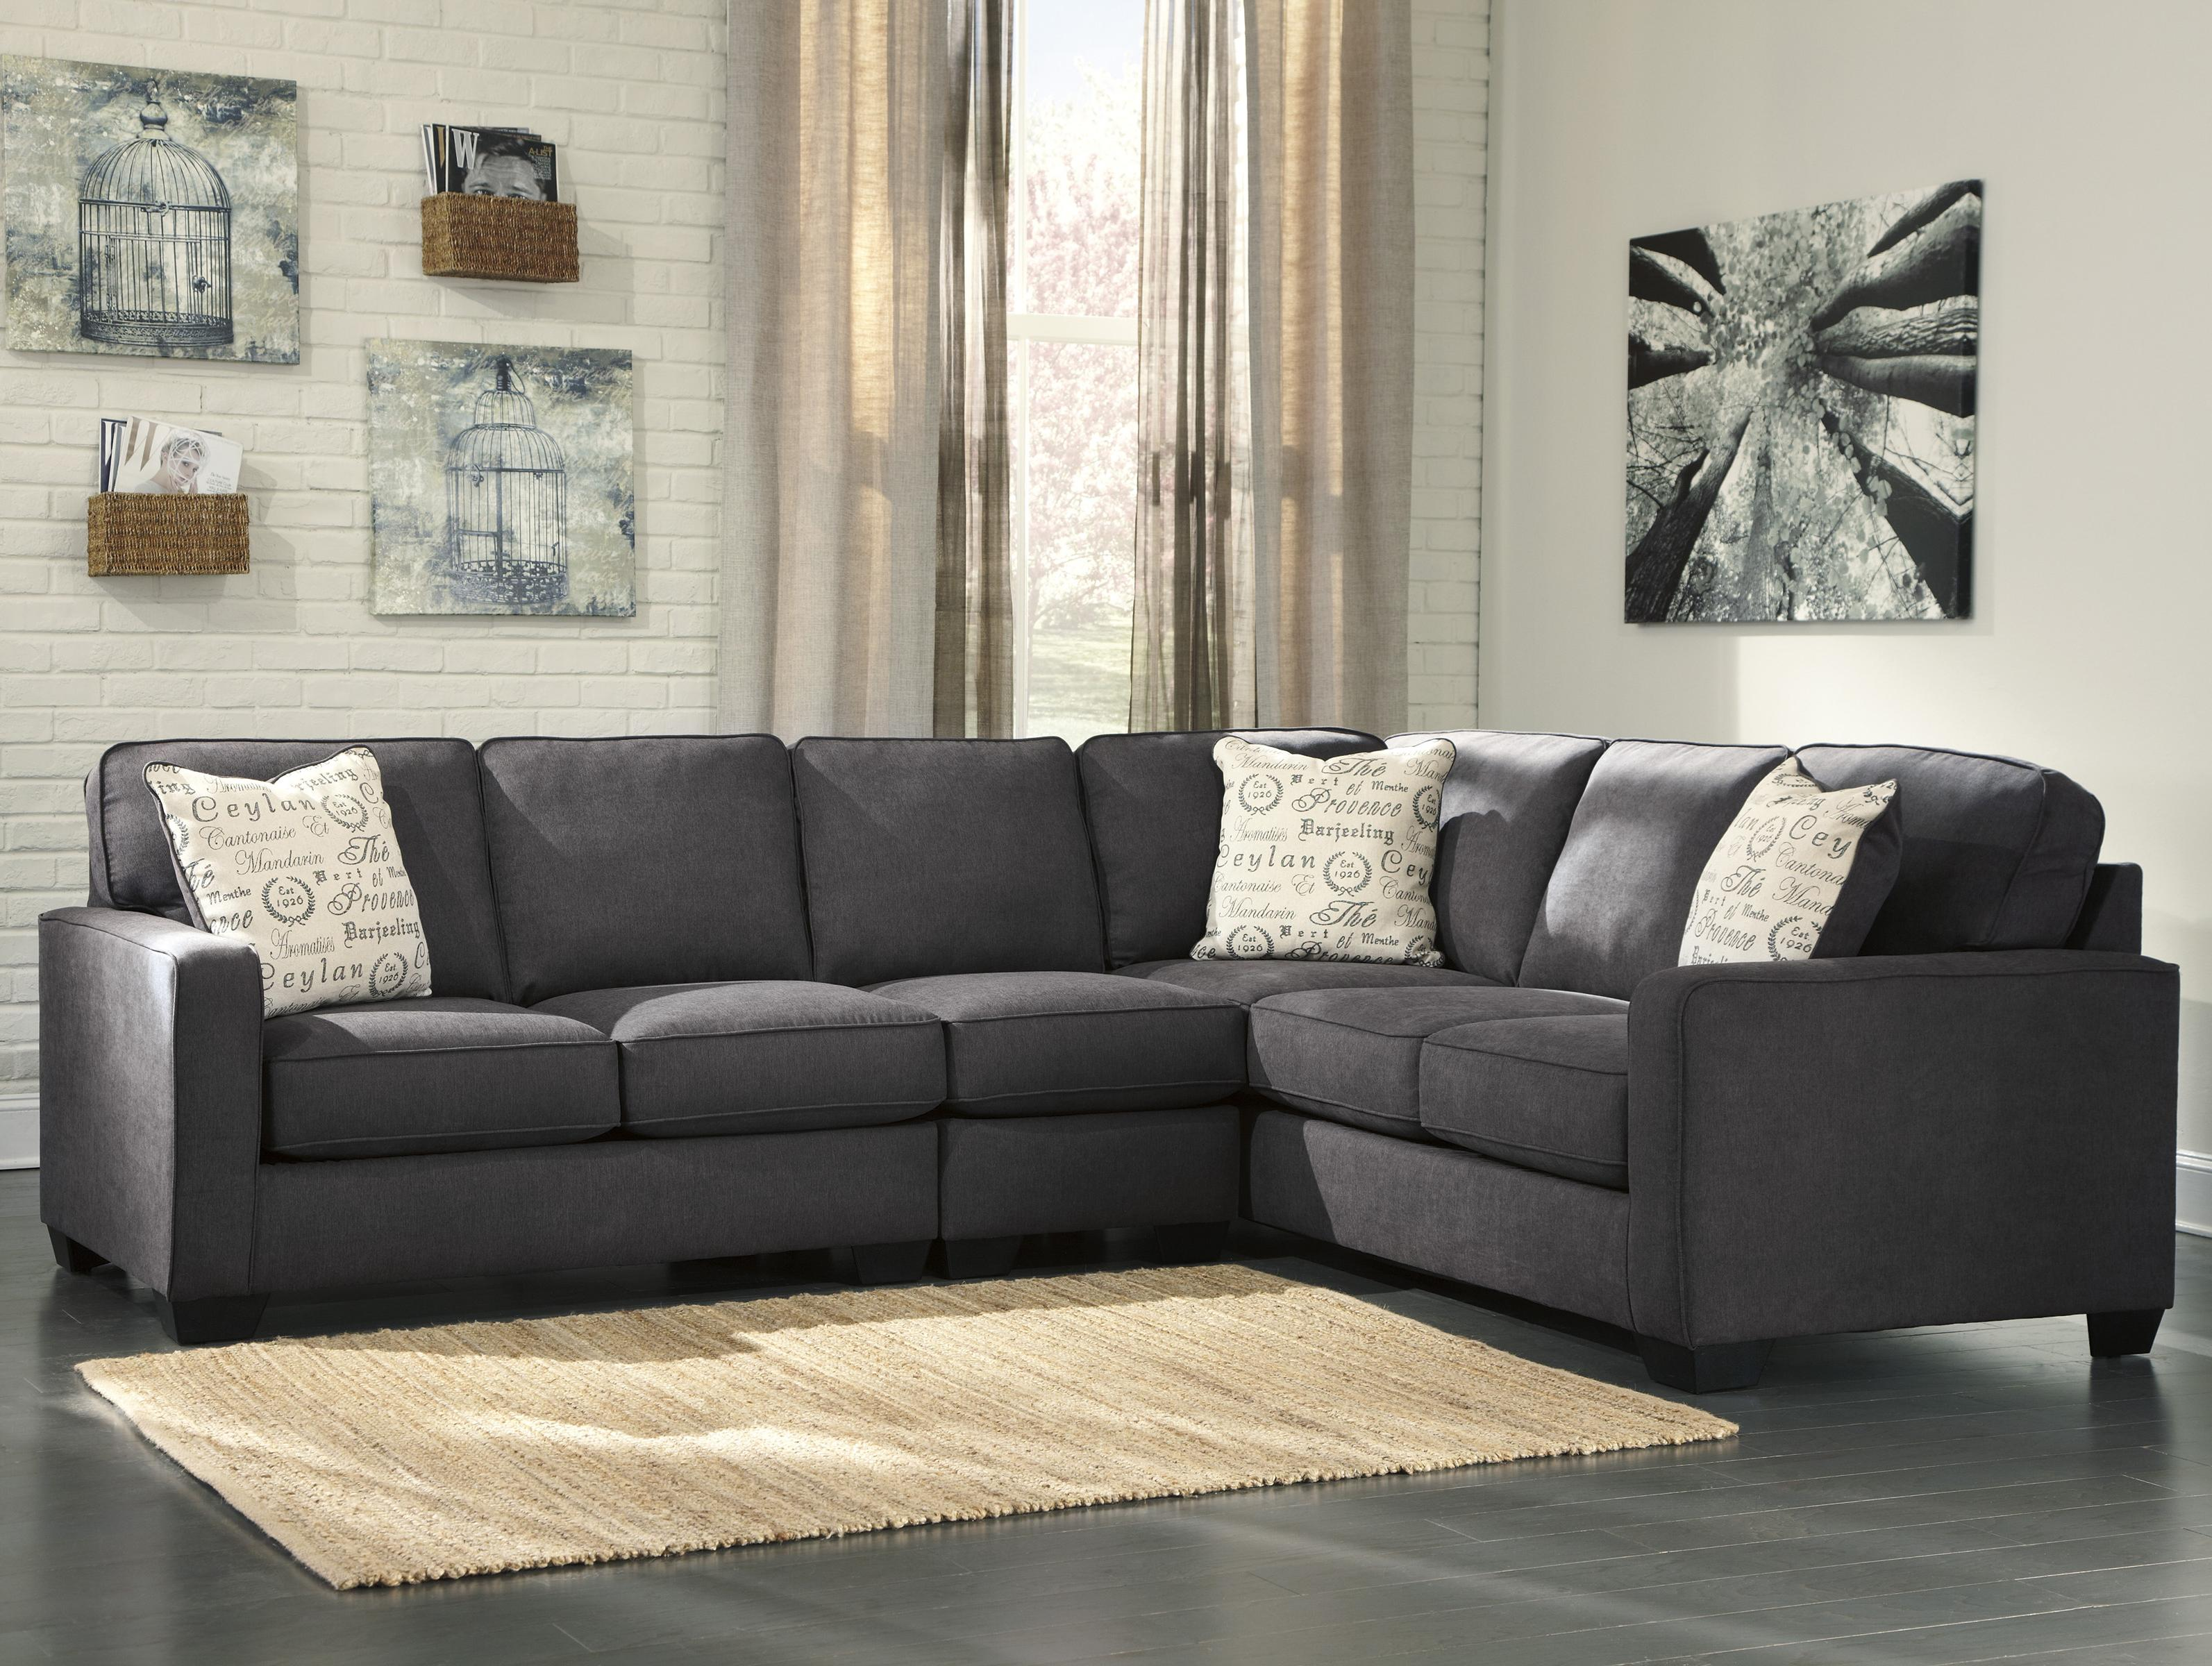 Signature design by ashley alenya charcoal 3 piece for Alenya 2 piece sofa sectional in charcoal